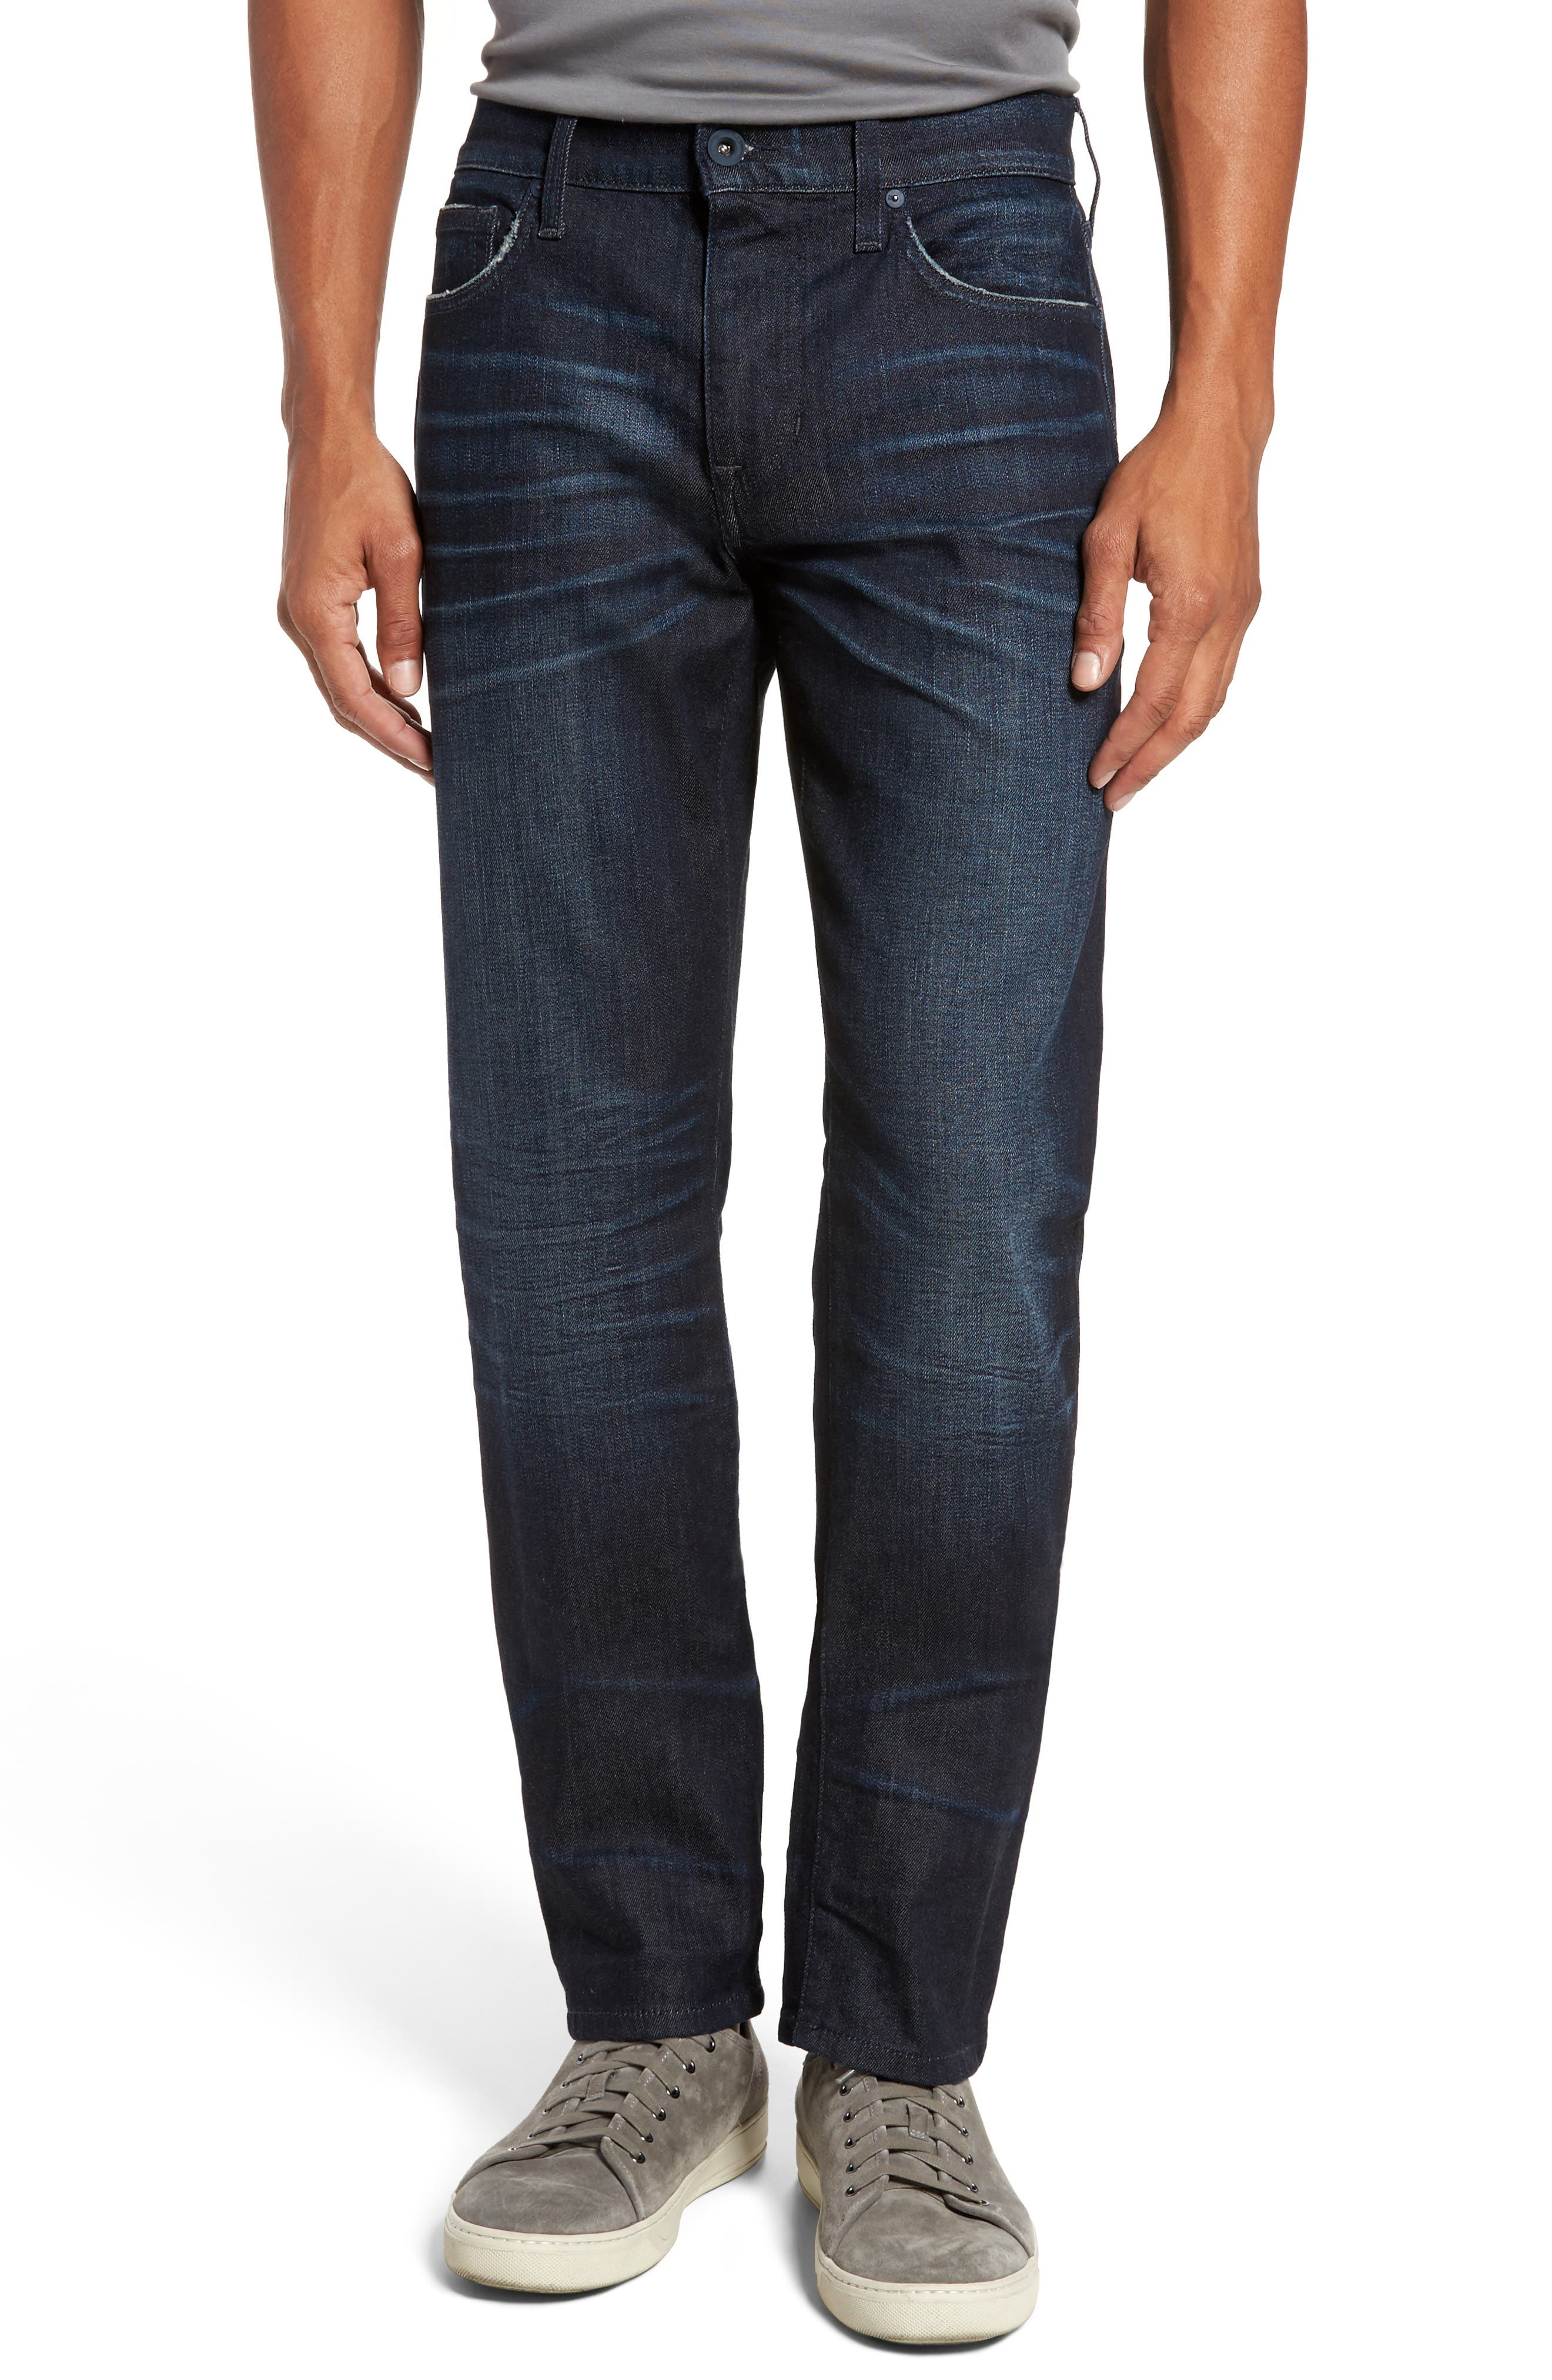 Brixton Slim Straight Fit Jeans,                         Main,                         color, Maag